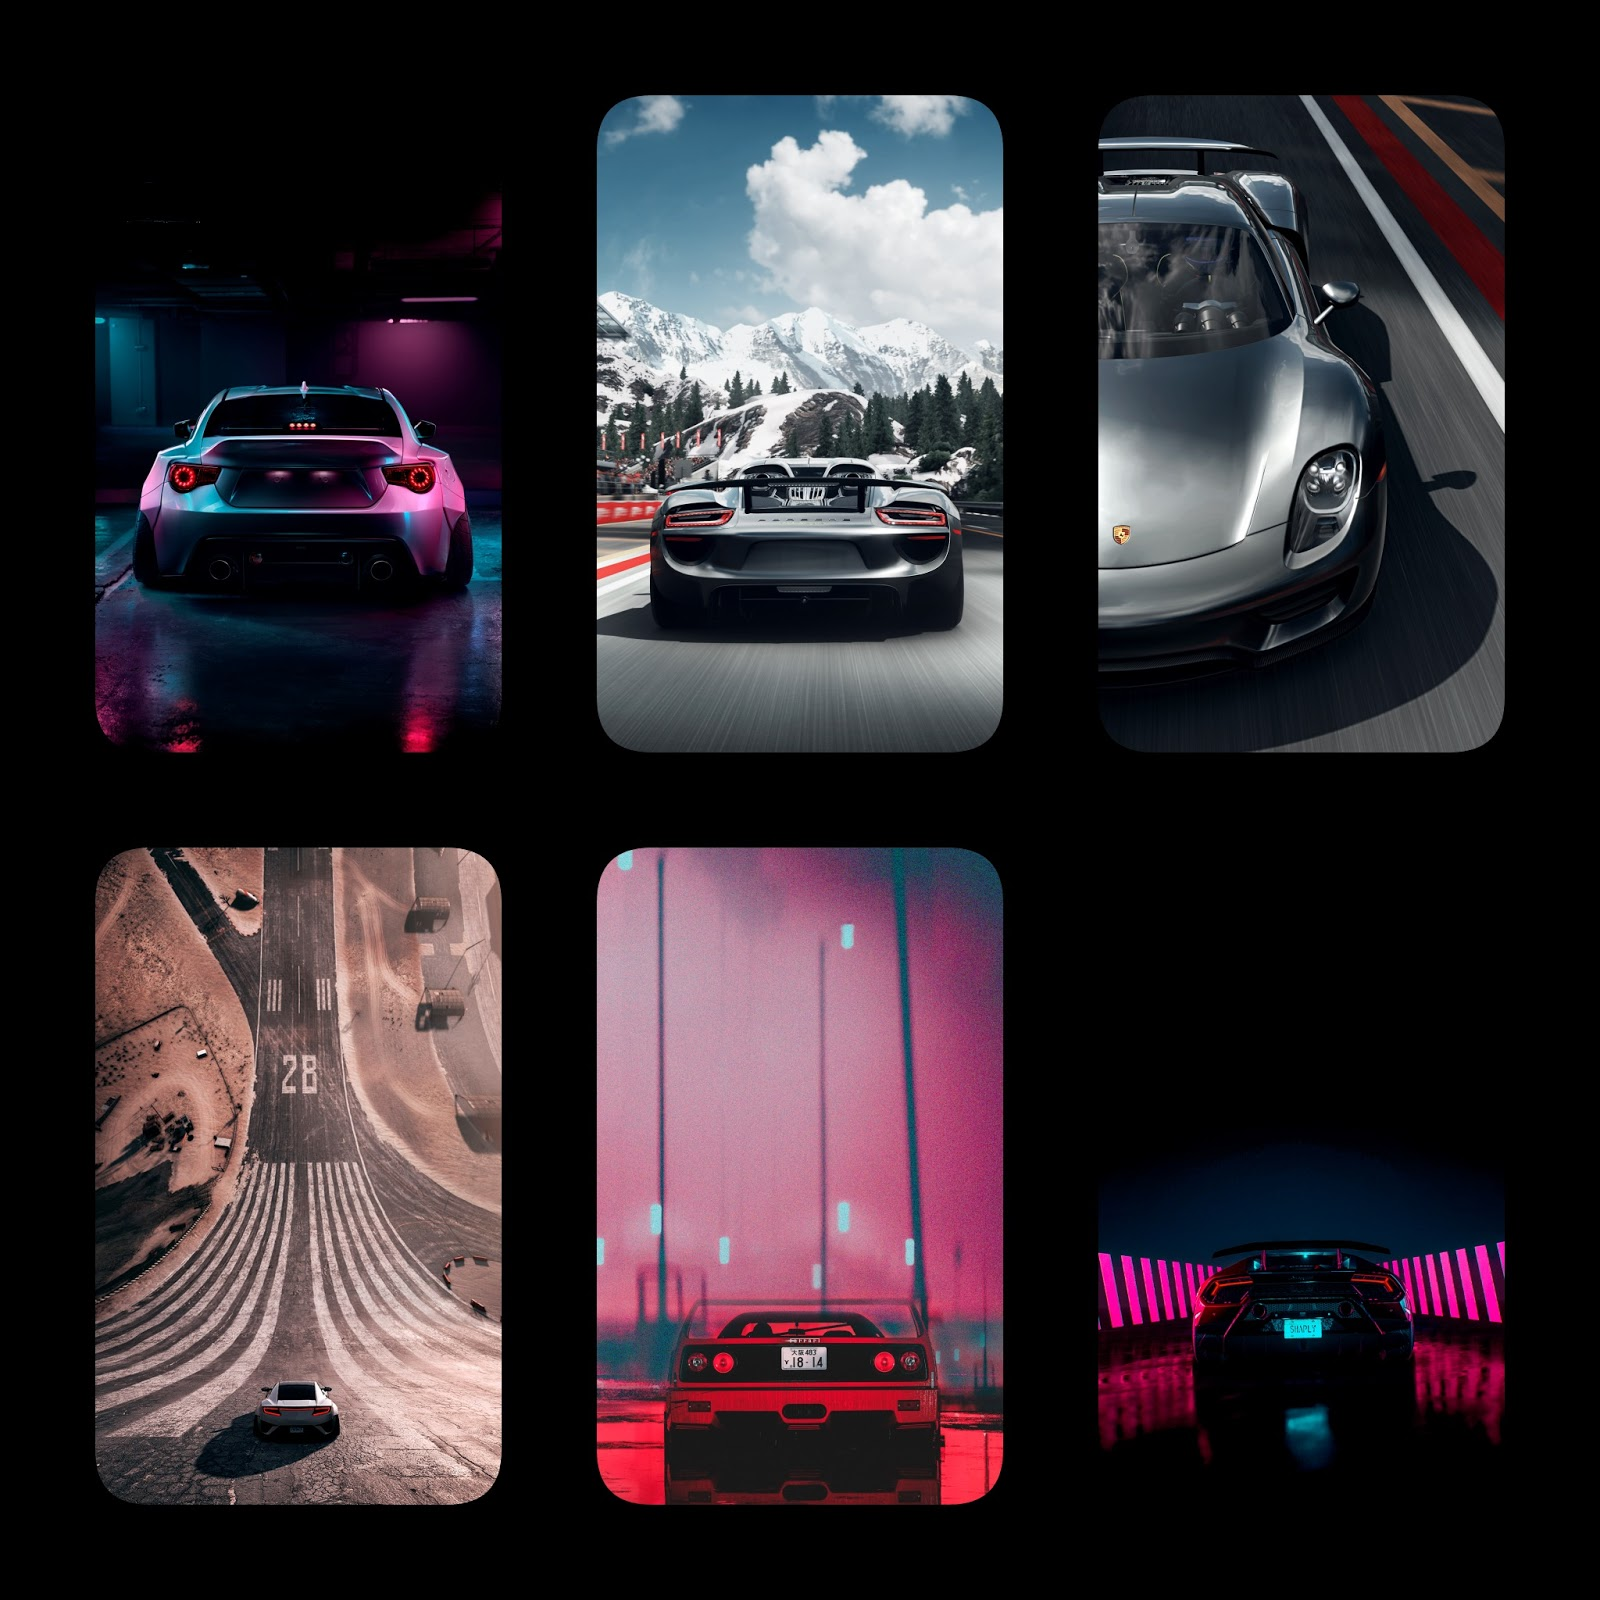 6 amazing cars phone wallpapers